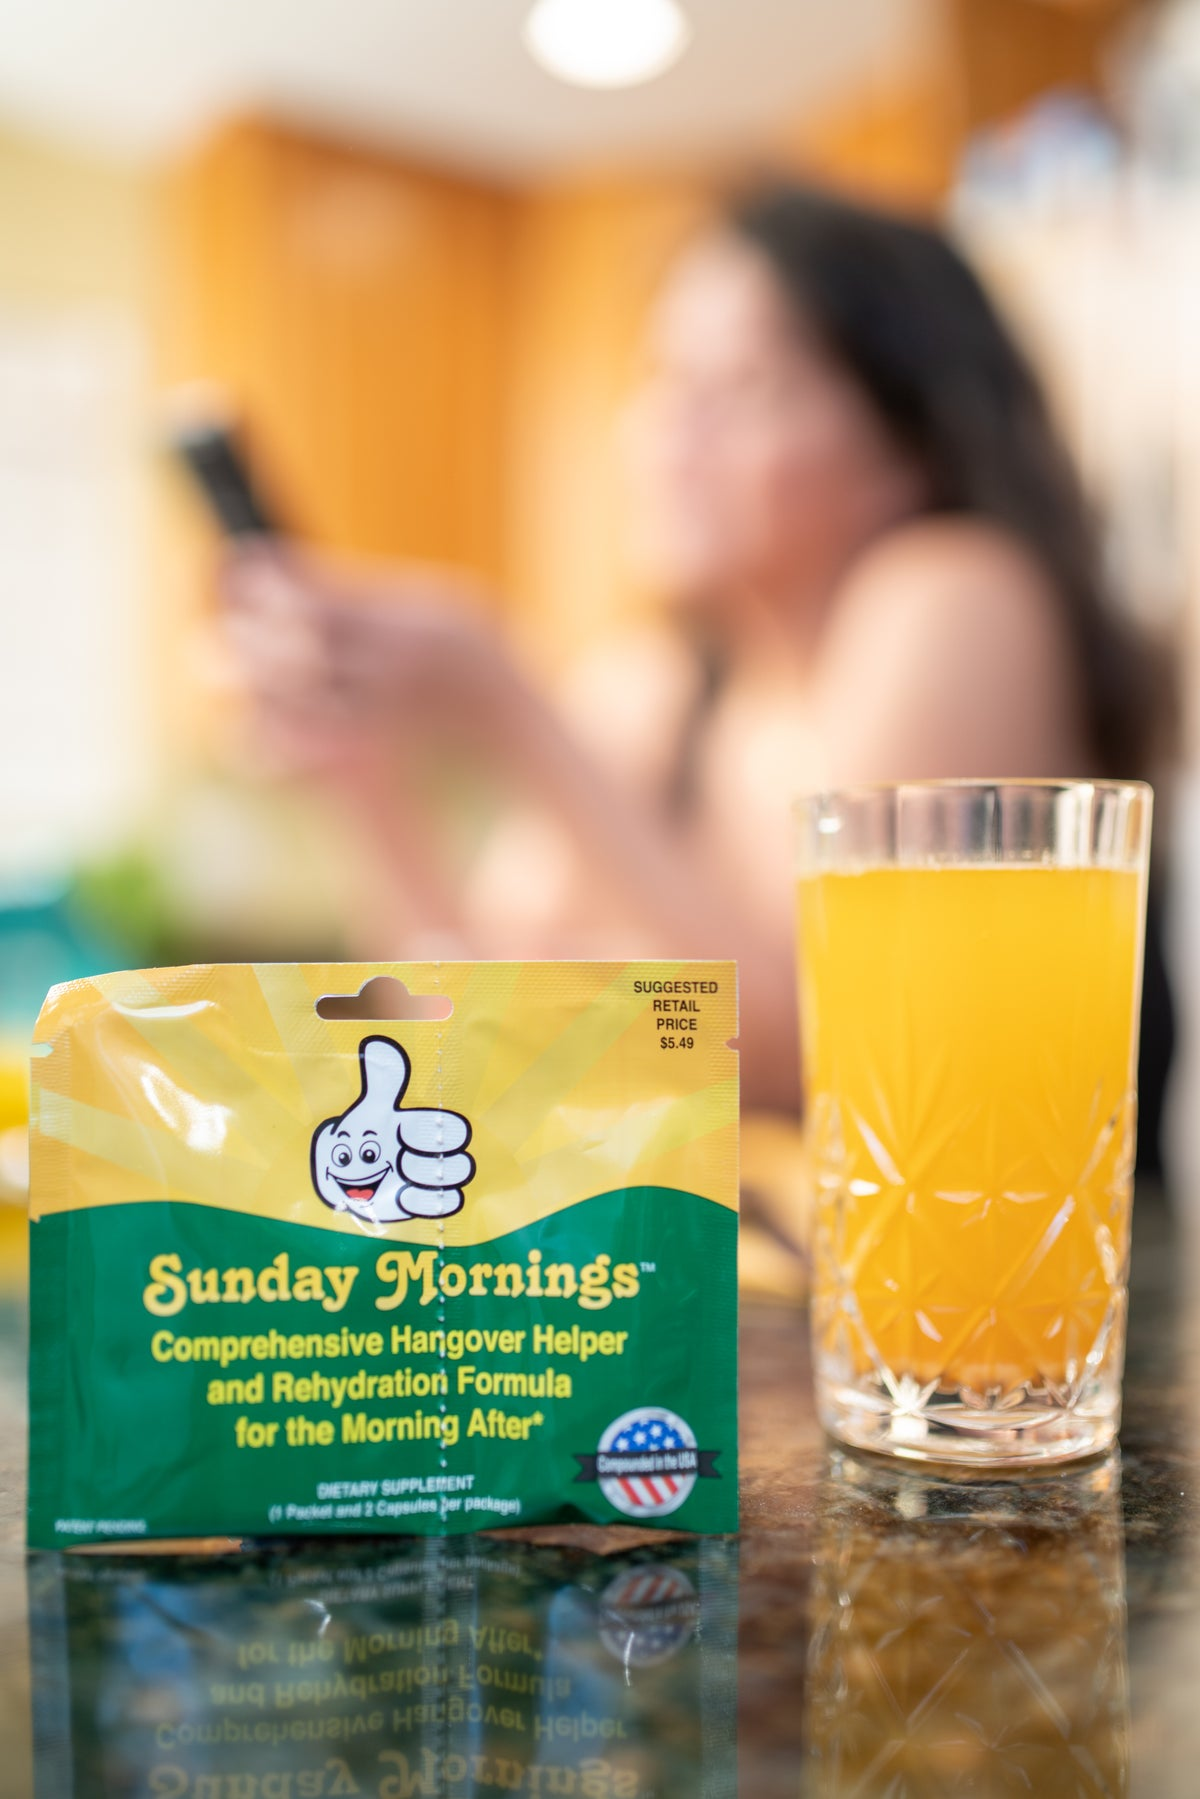 Get a Monthly Subscription of the Sunday Mornings Hero Kit - Sunday Mornings Hangover Helper